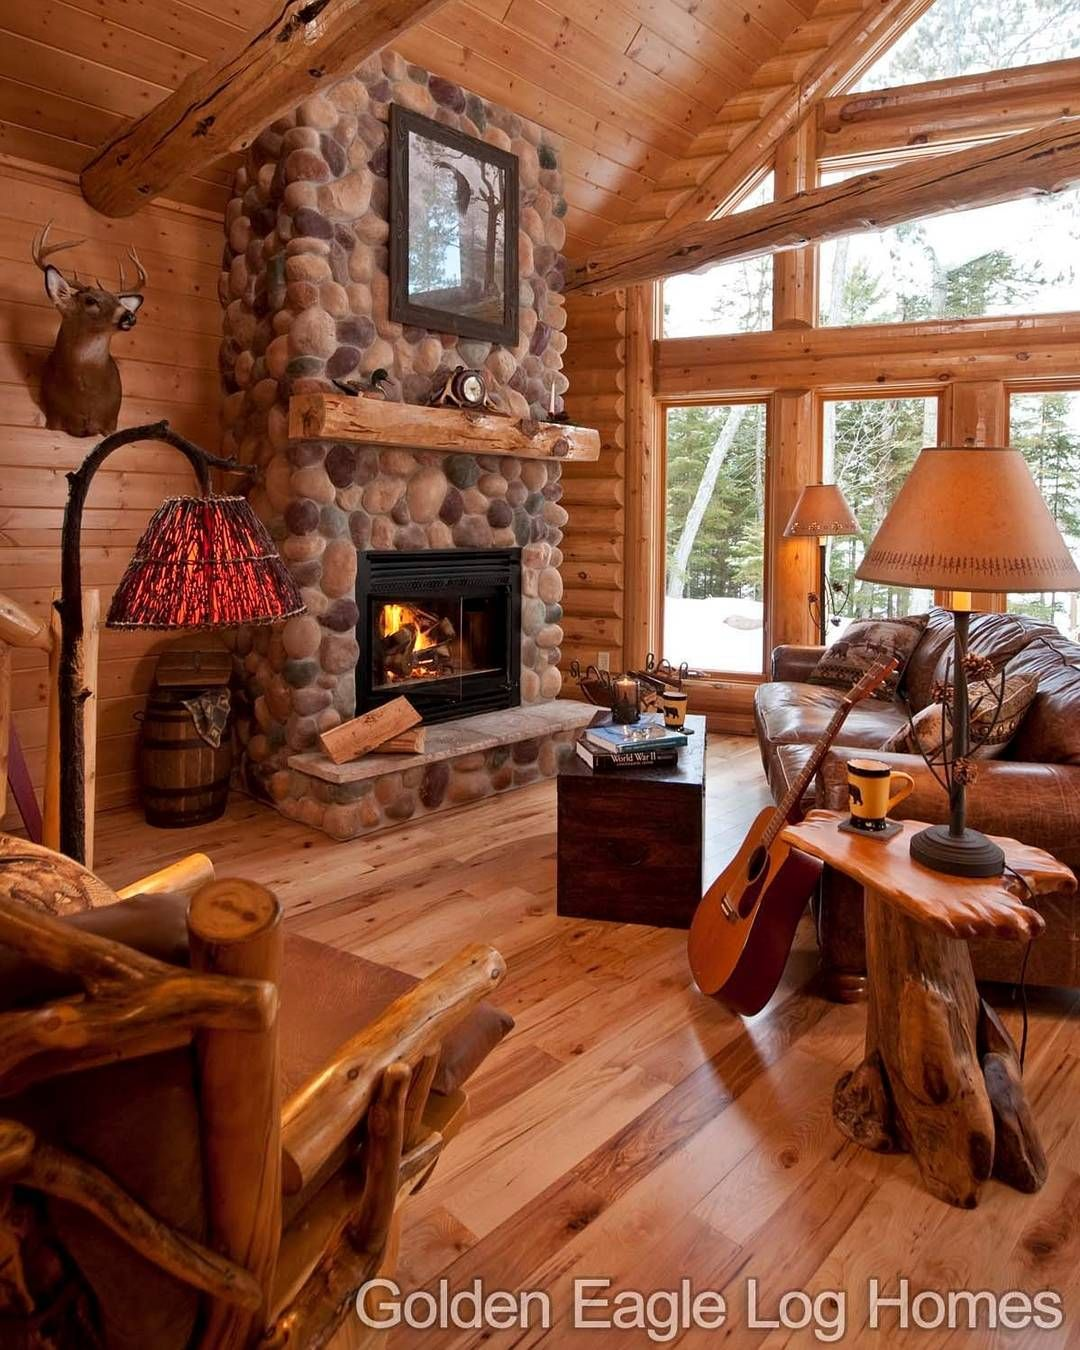 Golden Eagle Log Homes U2014 Beautiful Fireplace And Wood Floor In Our Modified.